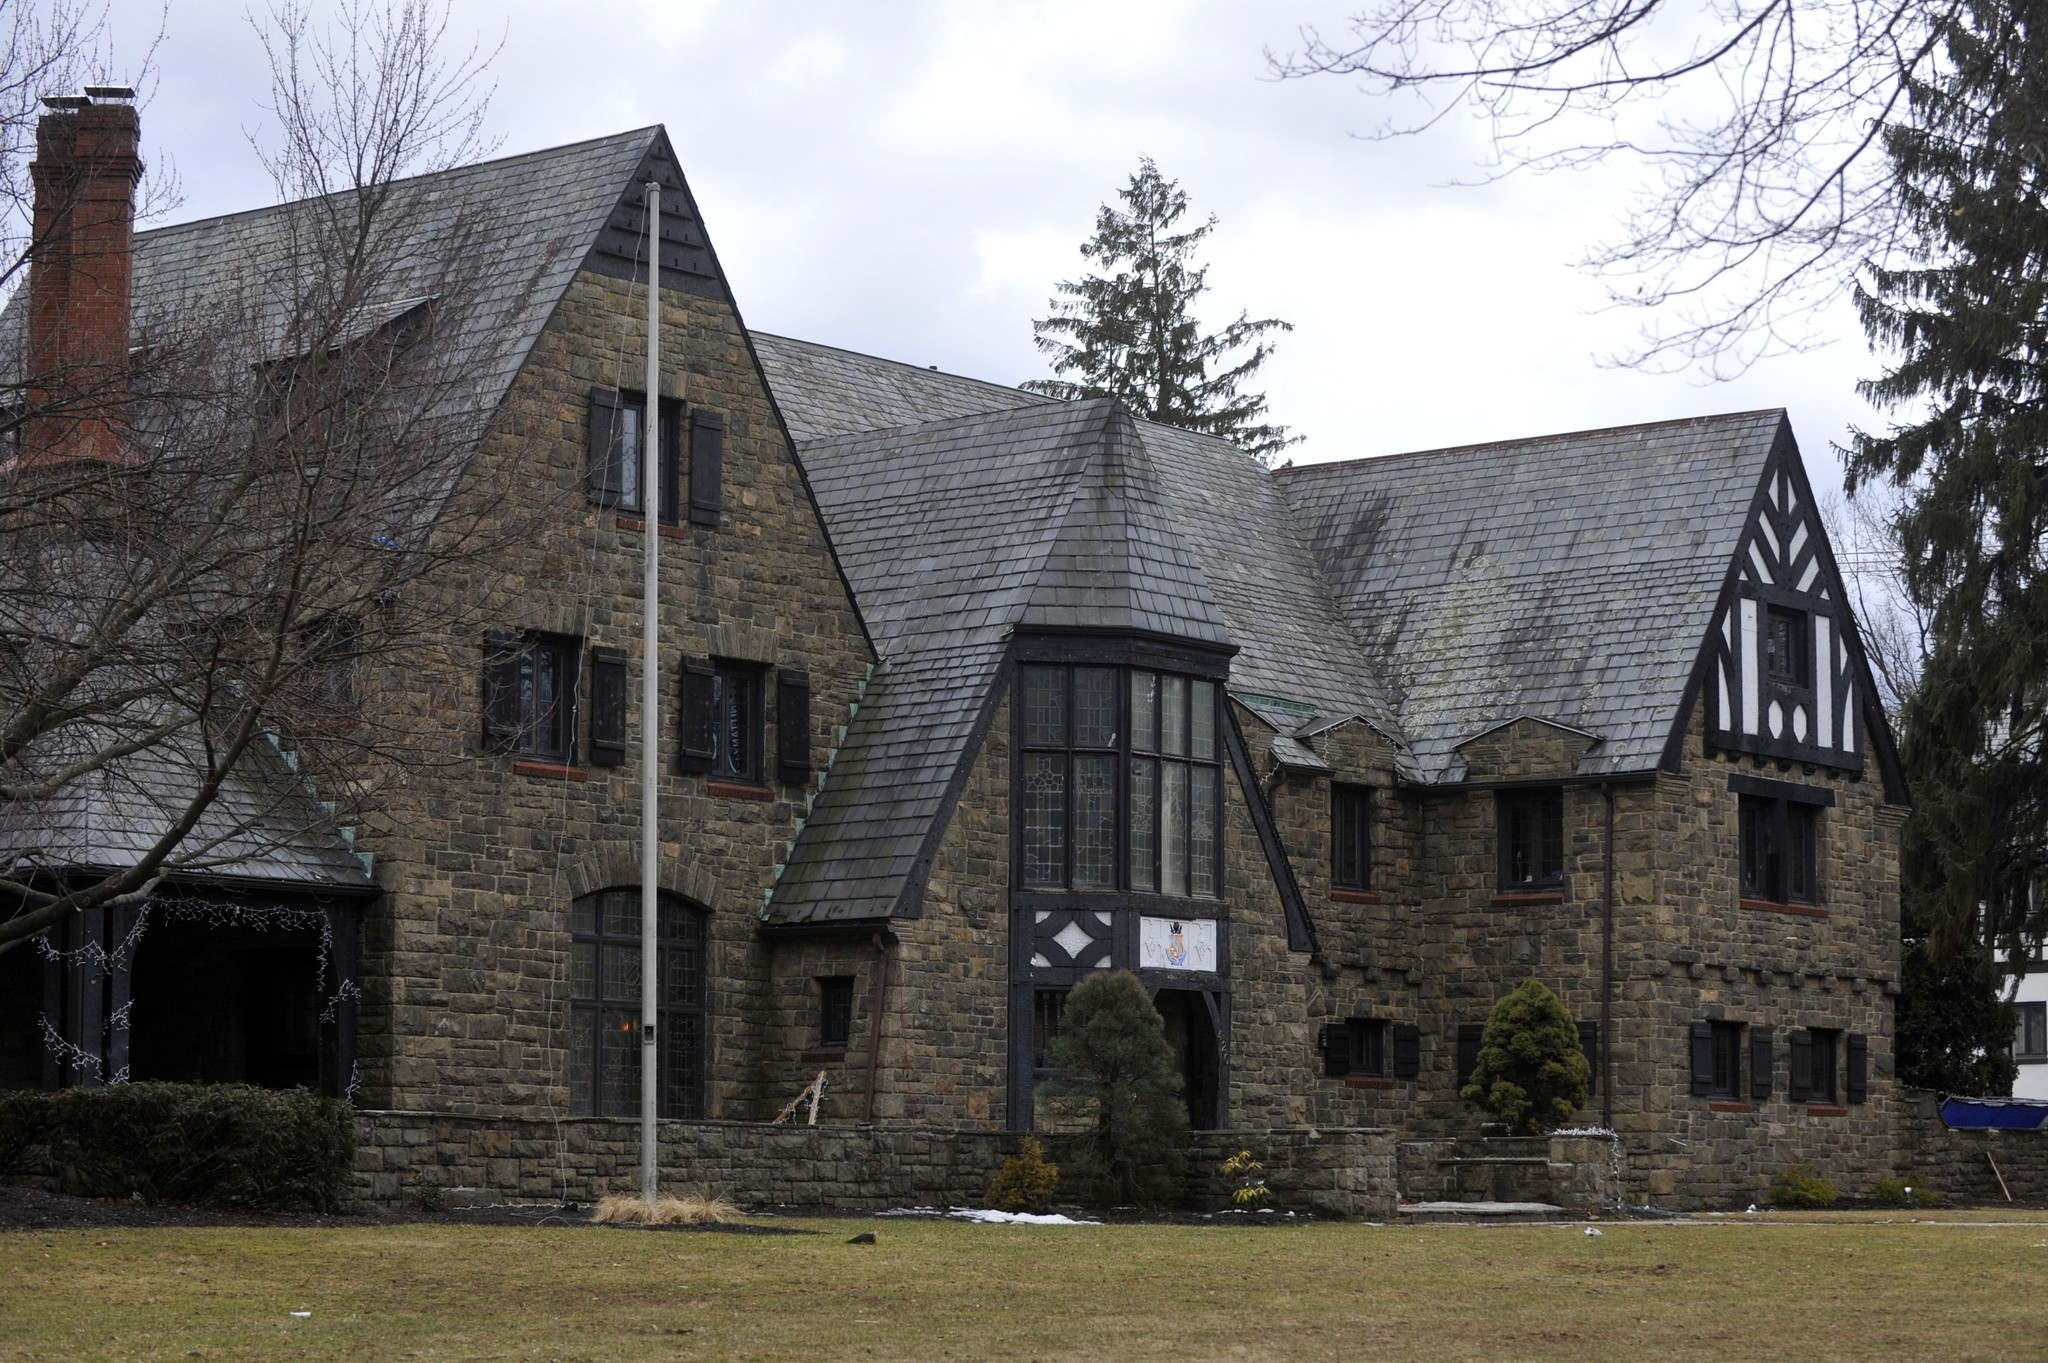 Naked Women Facebook Page Leads To Penn State Fraternity Suspension - The Morning Call-4097